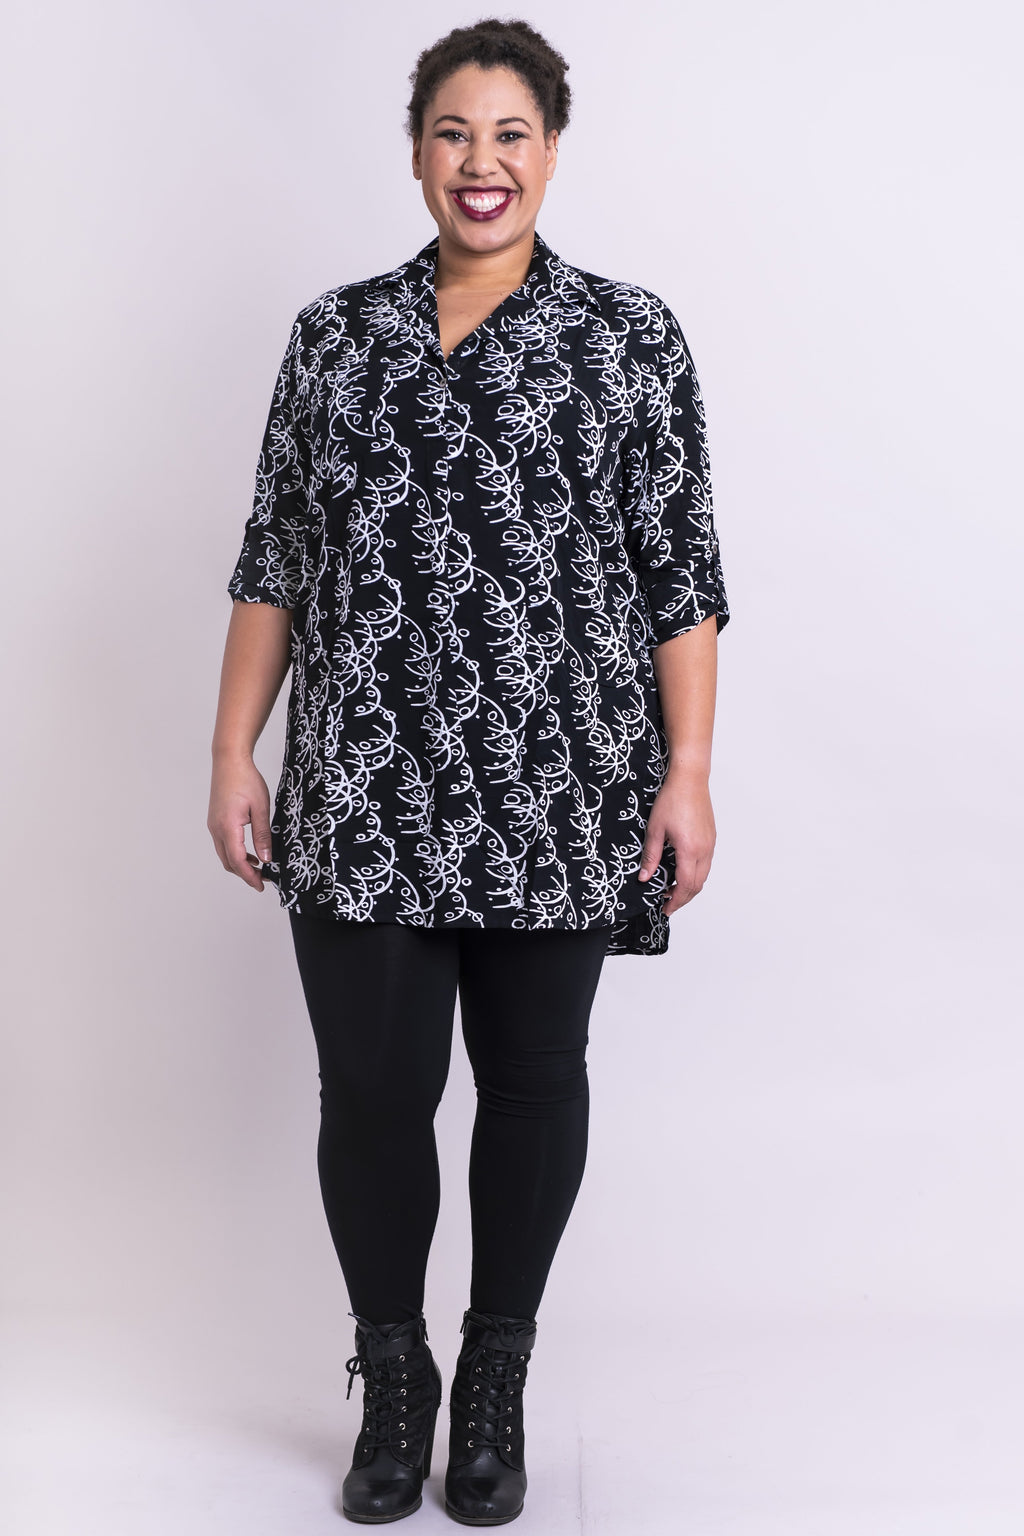 Queenie Top, Black Chalkboard, Batik Art - Blue Sky Clothing Co